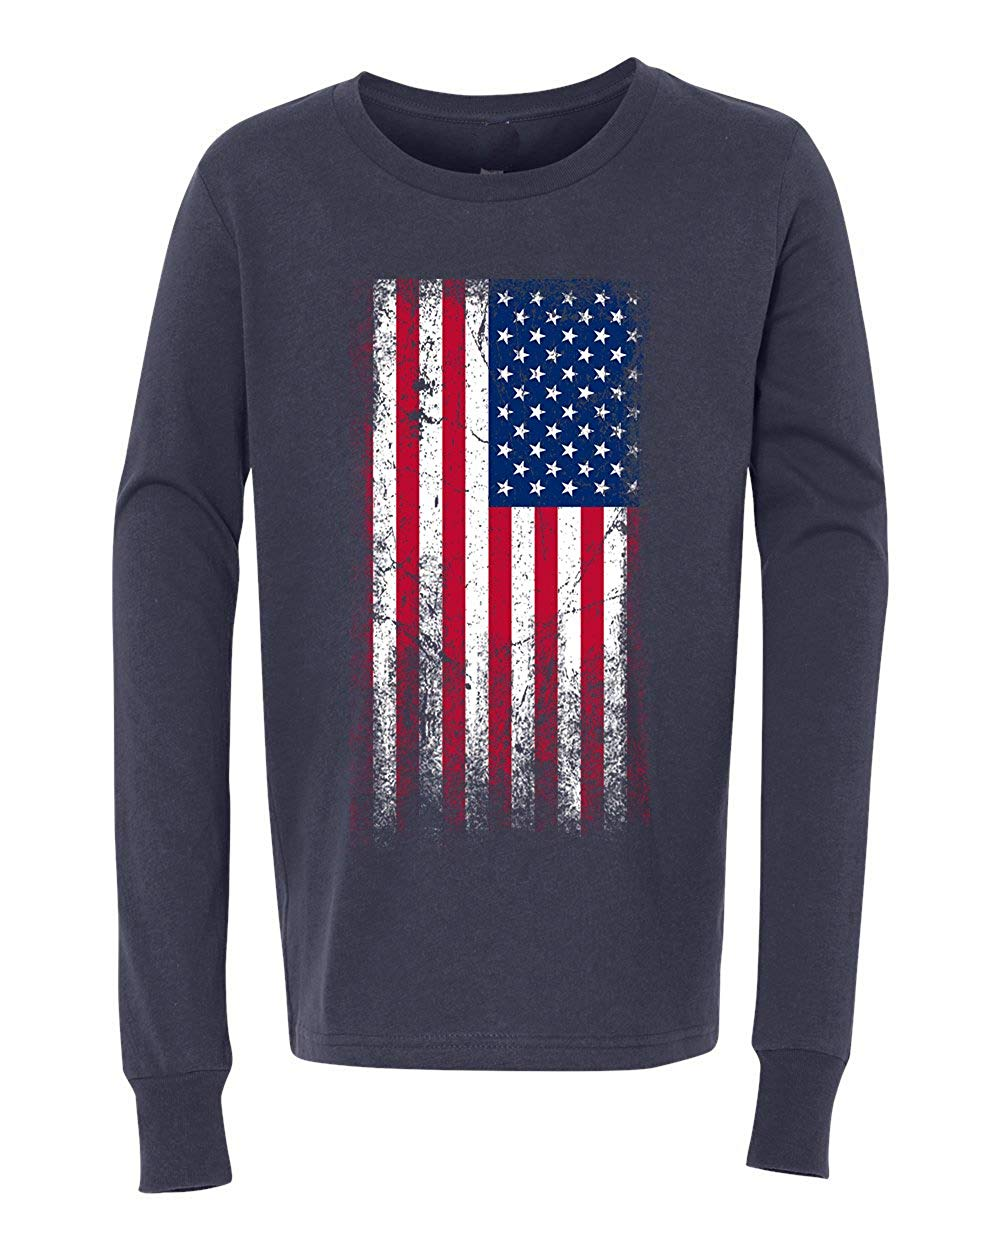 dbfc16f2 Get Quotations · Custom Apparel R Us American Flag Red White Blue USA Youth Long  Sleeve T-Shirt